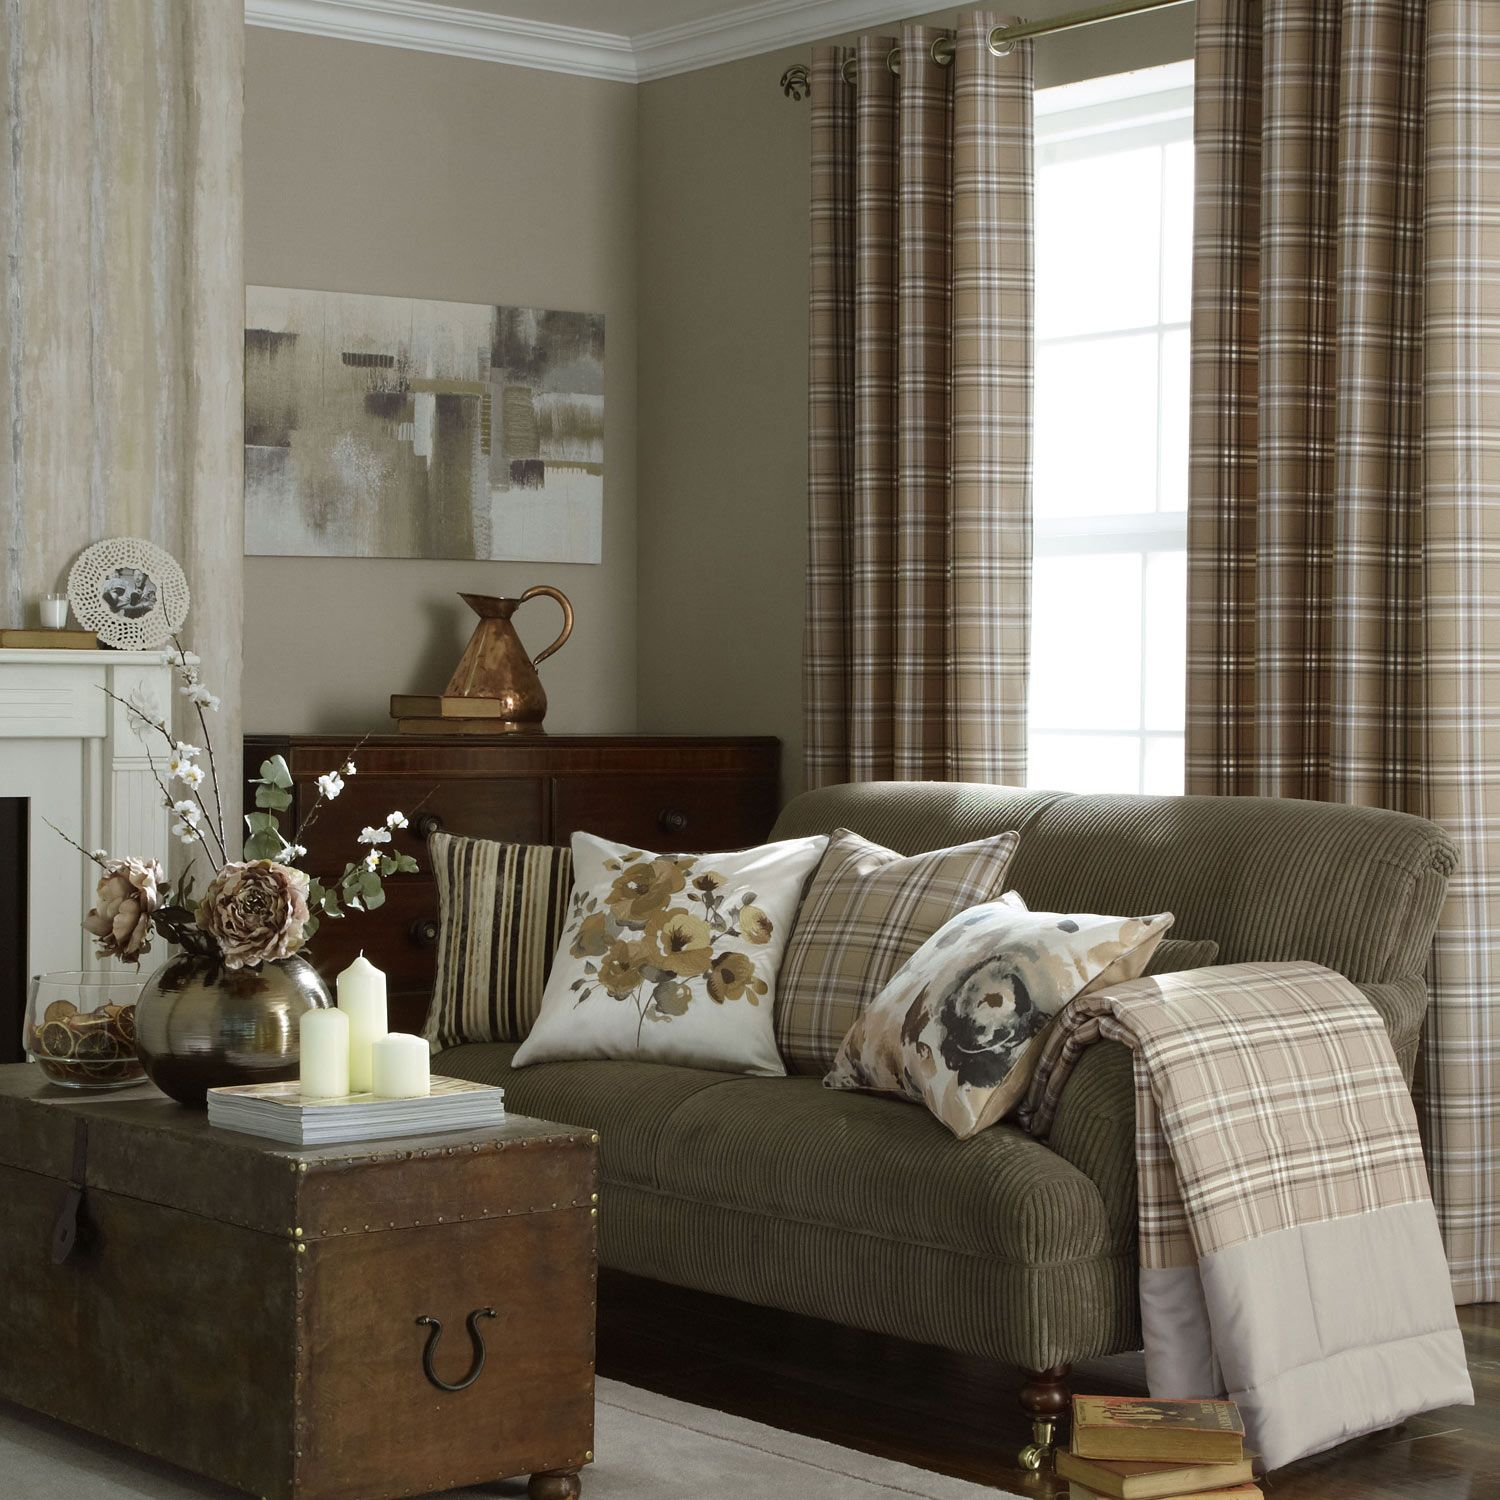 Woodland Living Room ILiv Piazza Cerato Tartan Check Eyelet Curtains